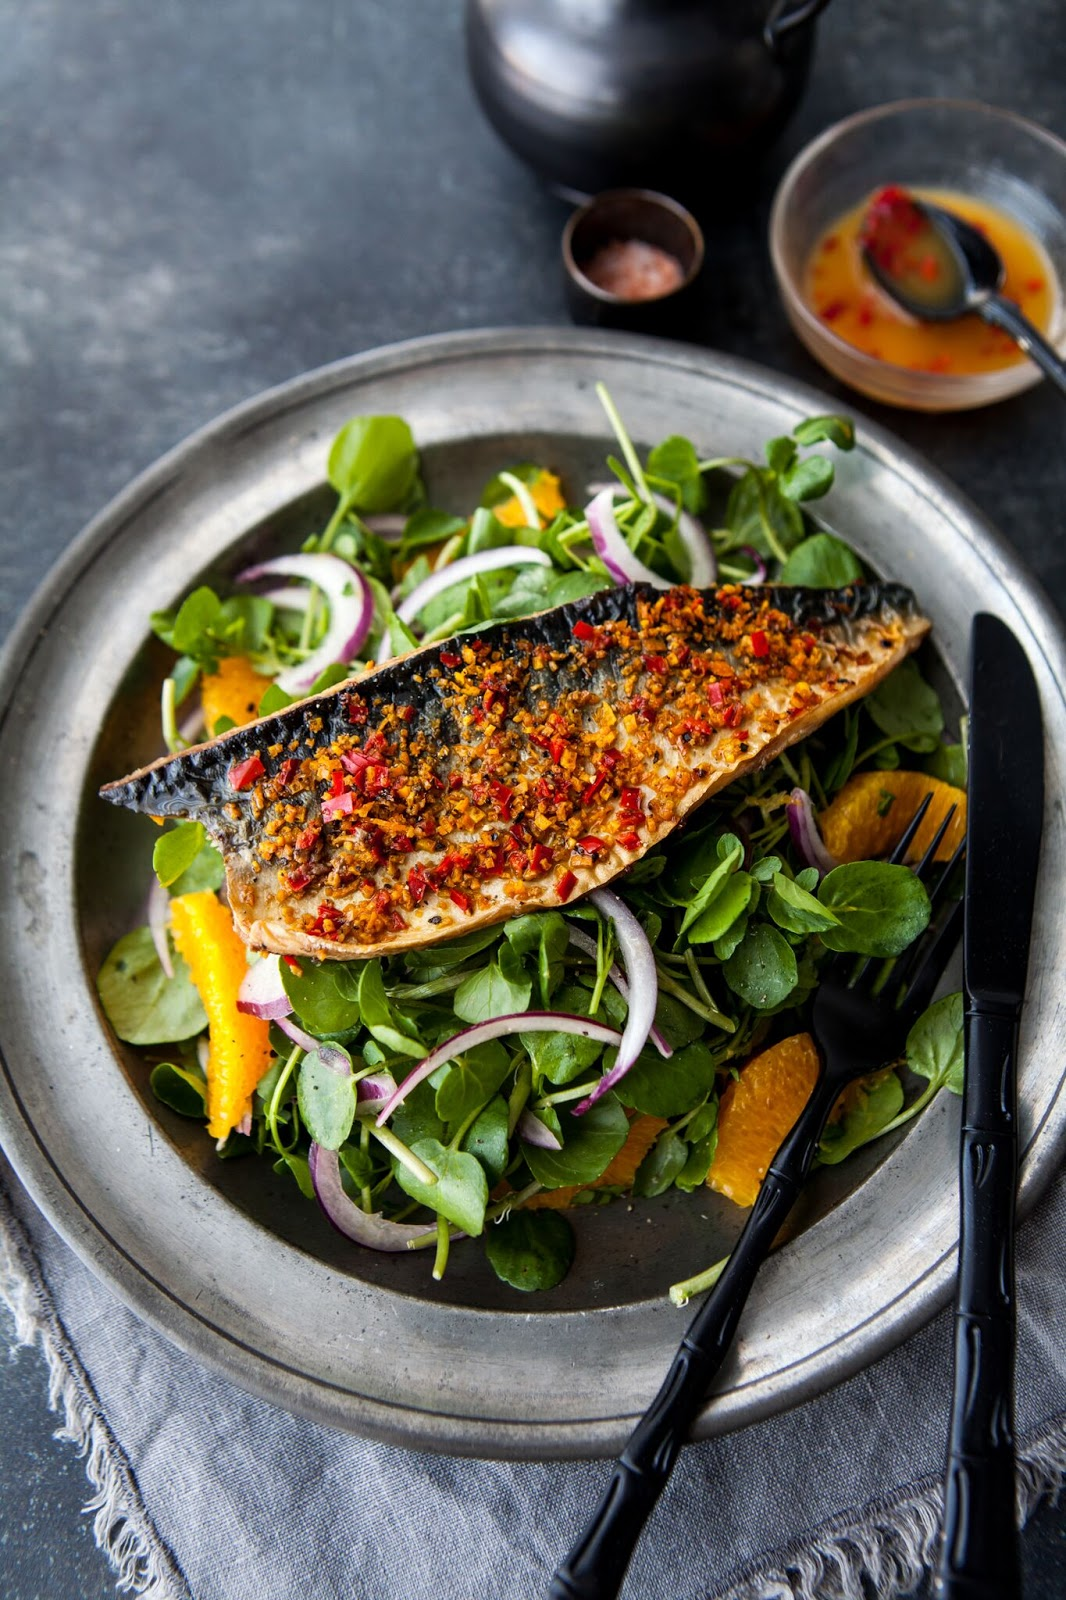 Grilled Mackerel And Watercress Salad With Orange And Chilli